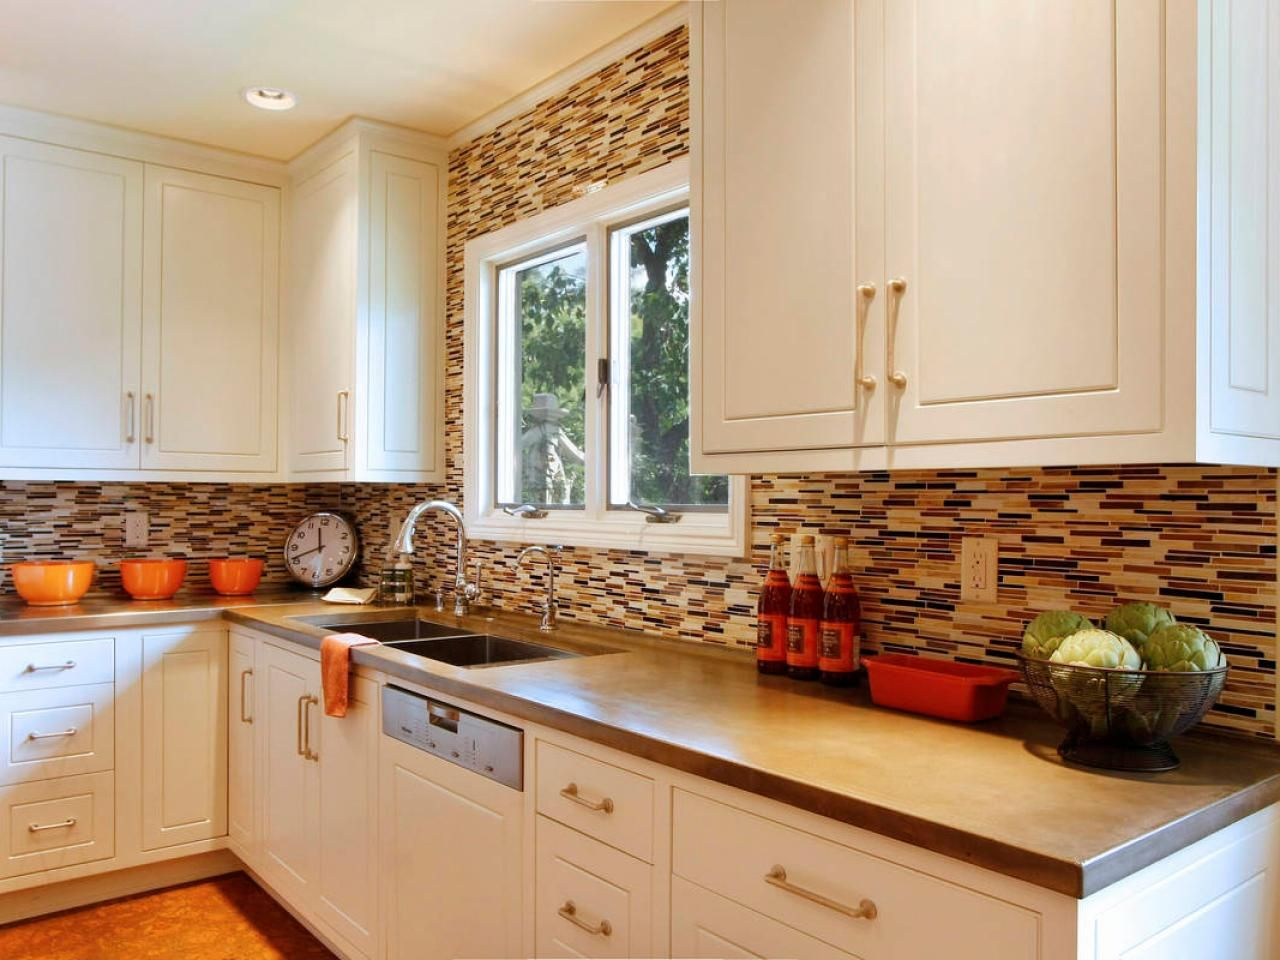 Brown Tile Backsplash Accents White Cabinets Contemporary Kitchen Tiles Brown Kitchen Tiles Brown Tile Backsplash